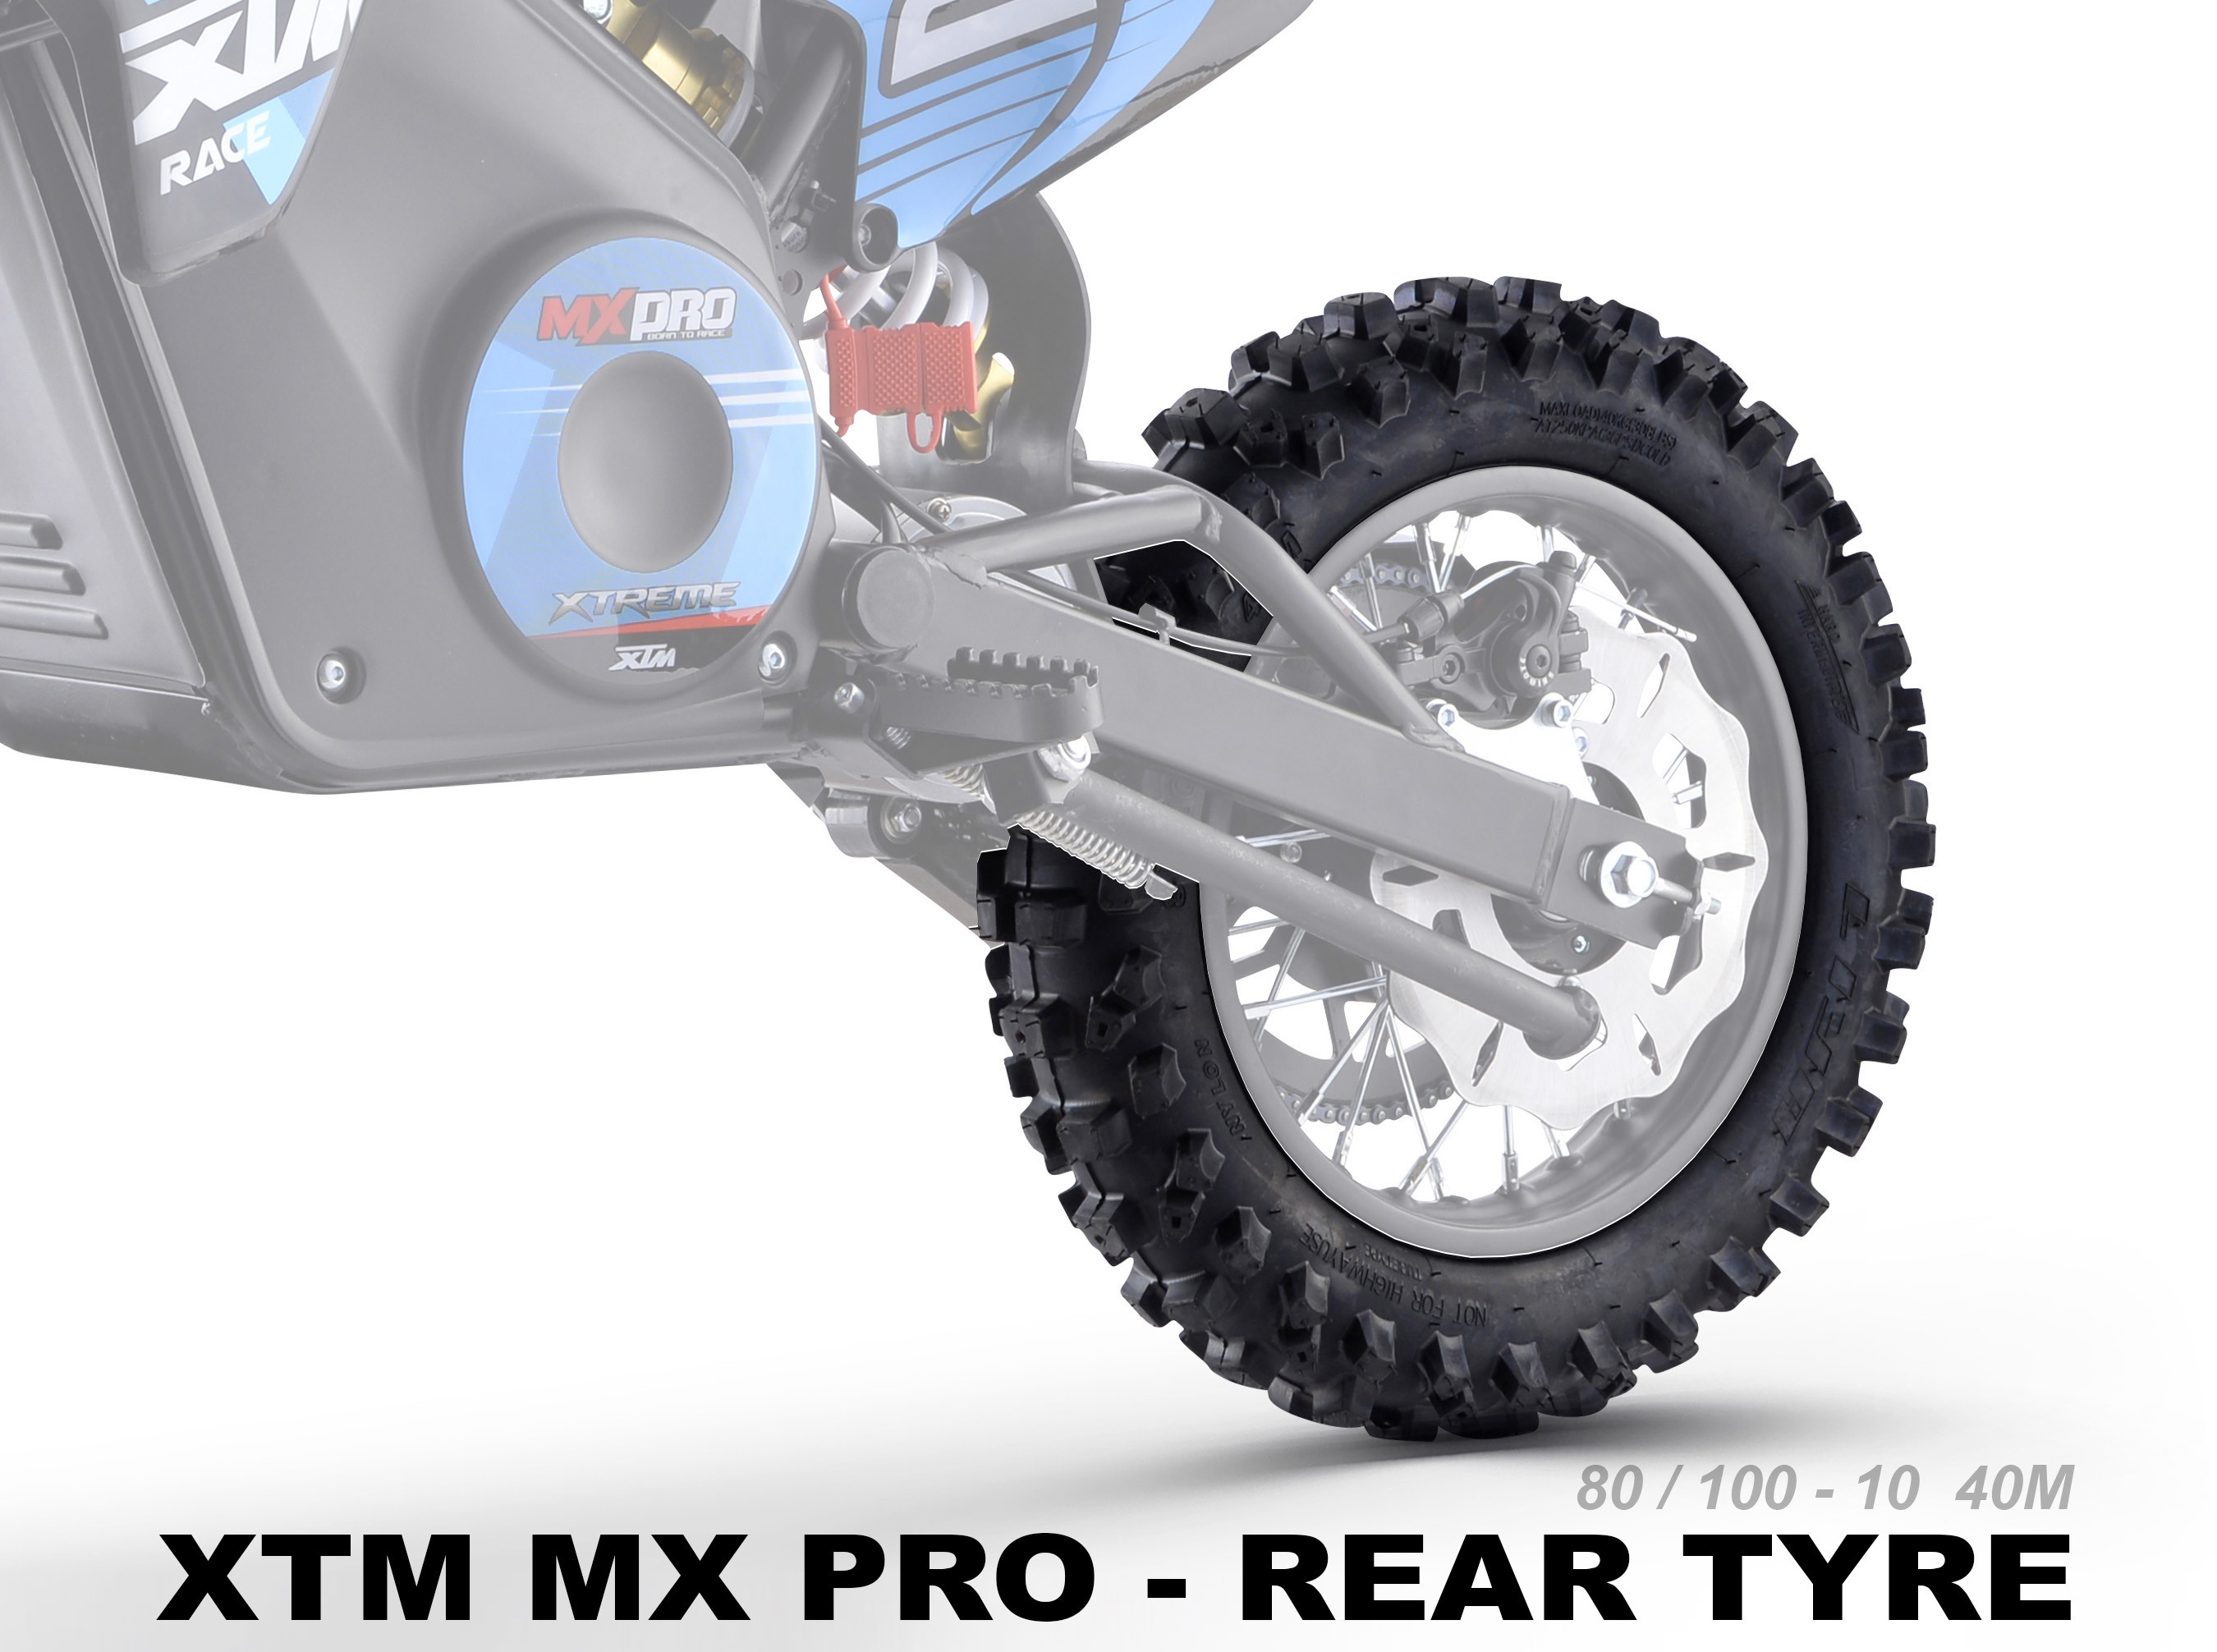 XTREME ELECTRIC XTM MX-PRO 36V REPLACEMENT REAR TYRE 80/100-10 40M